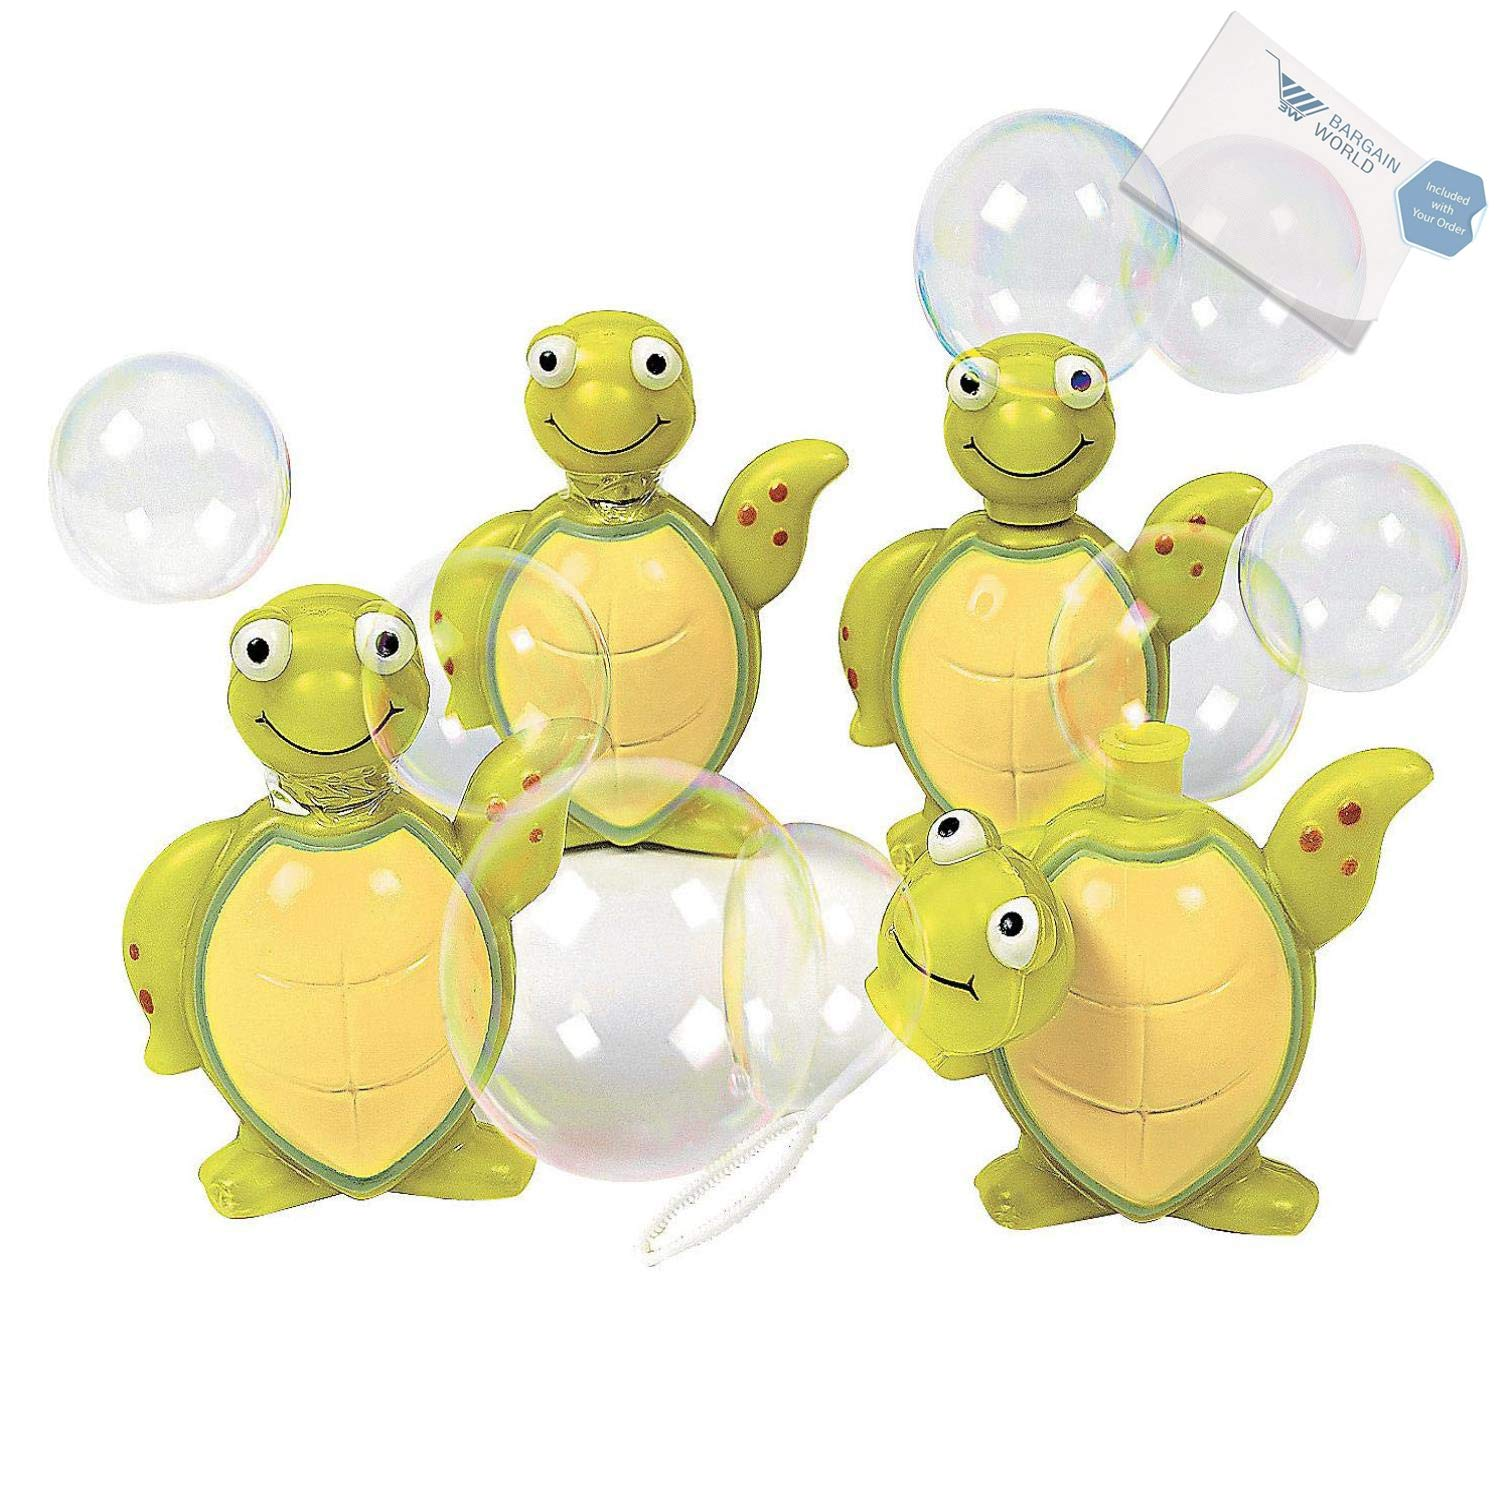 Bargain World Plastic Sea Turtle Bubble Bottles (With Sticky Notes)